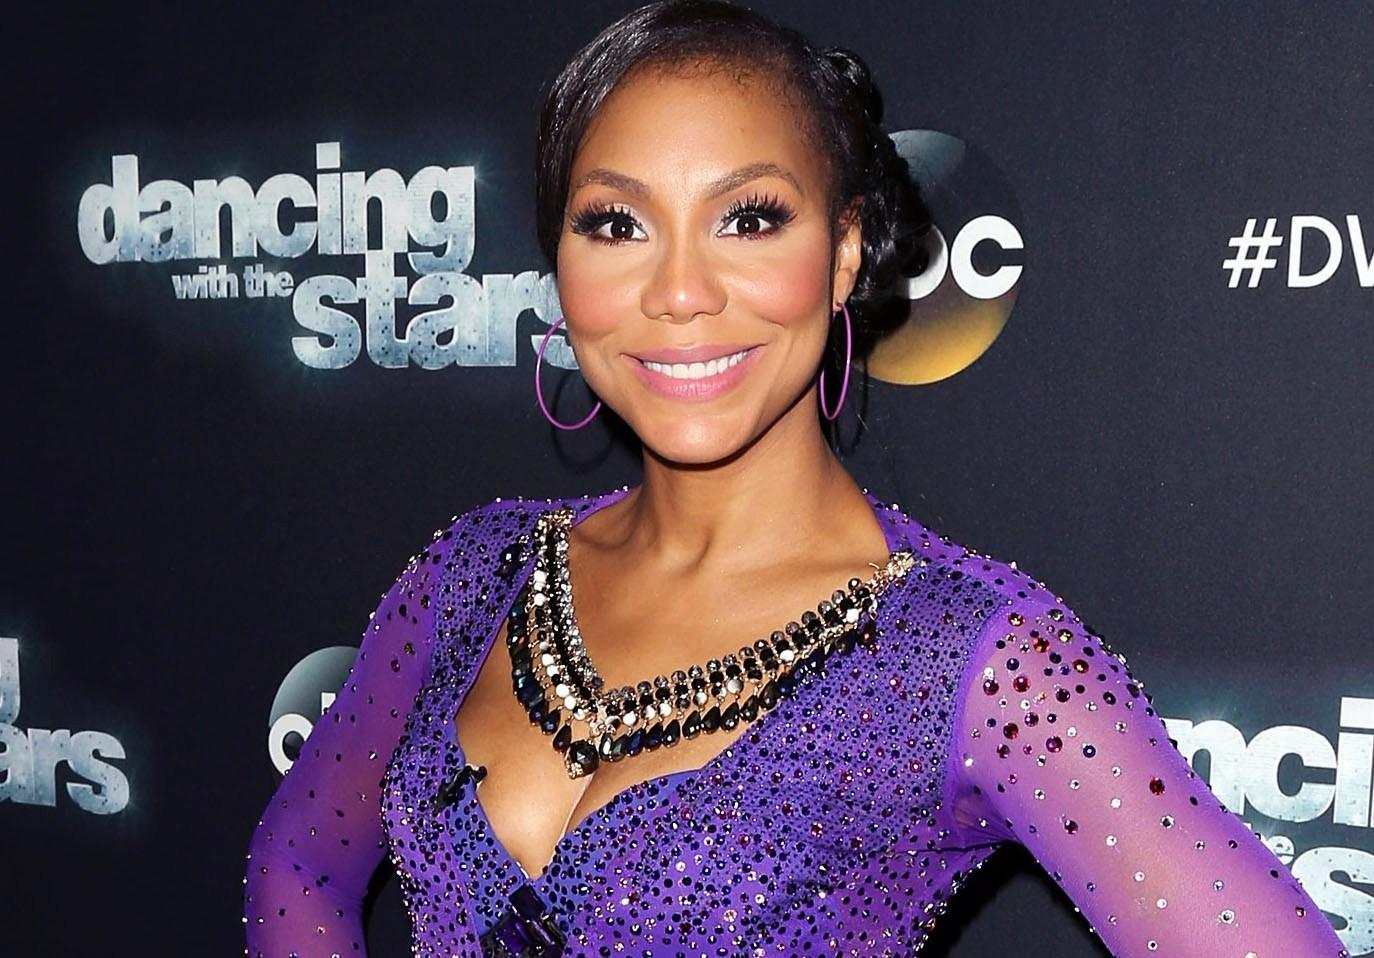 Tamar Braxton Shares Her 2019 Resolution With Fans - Here It Is